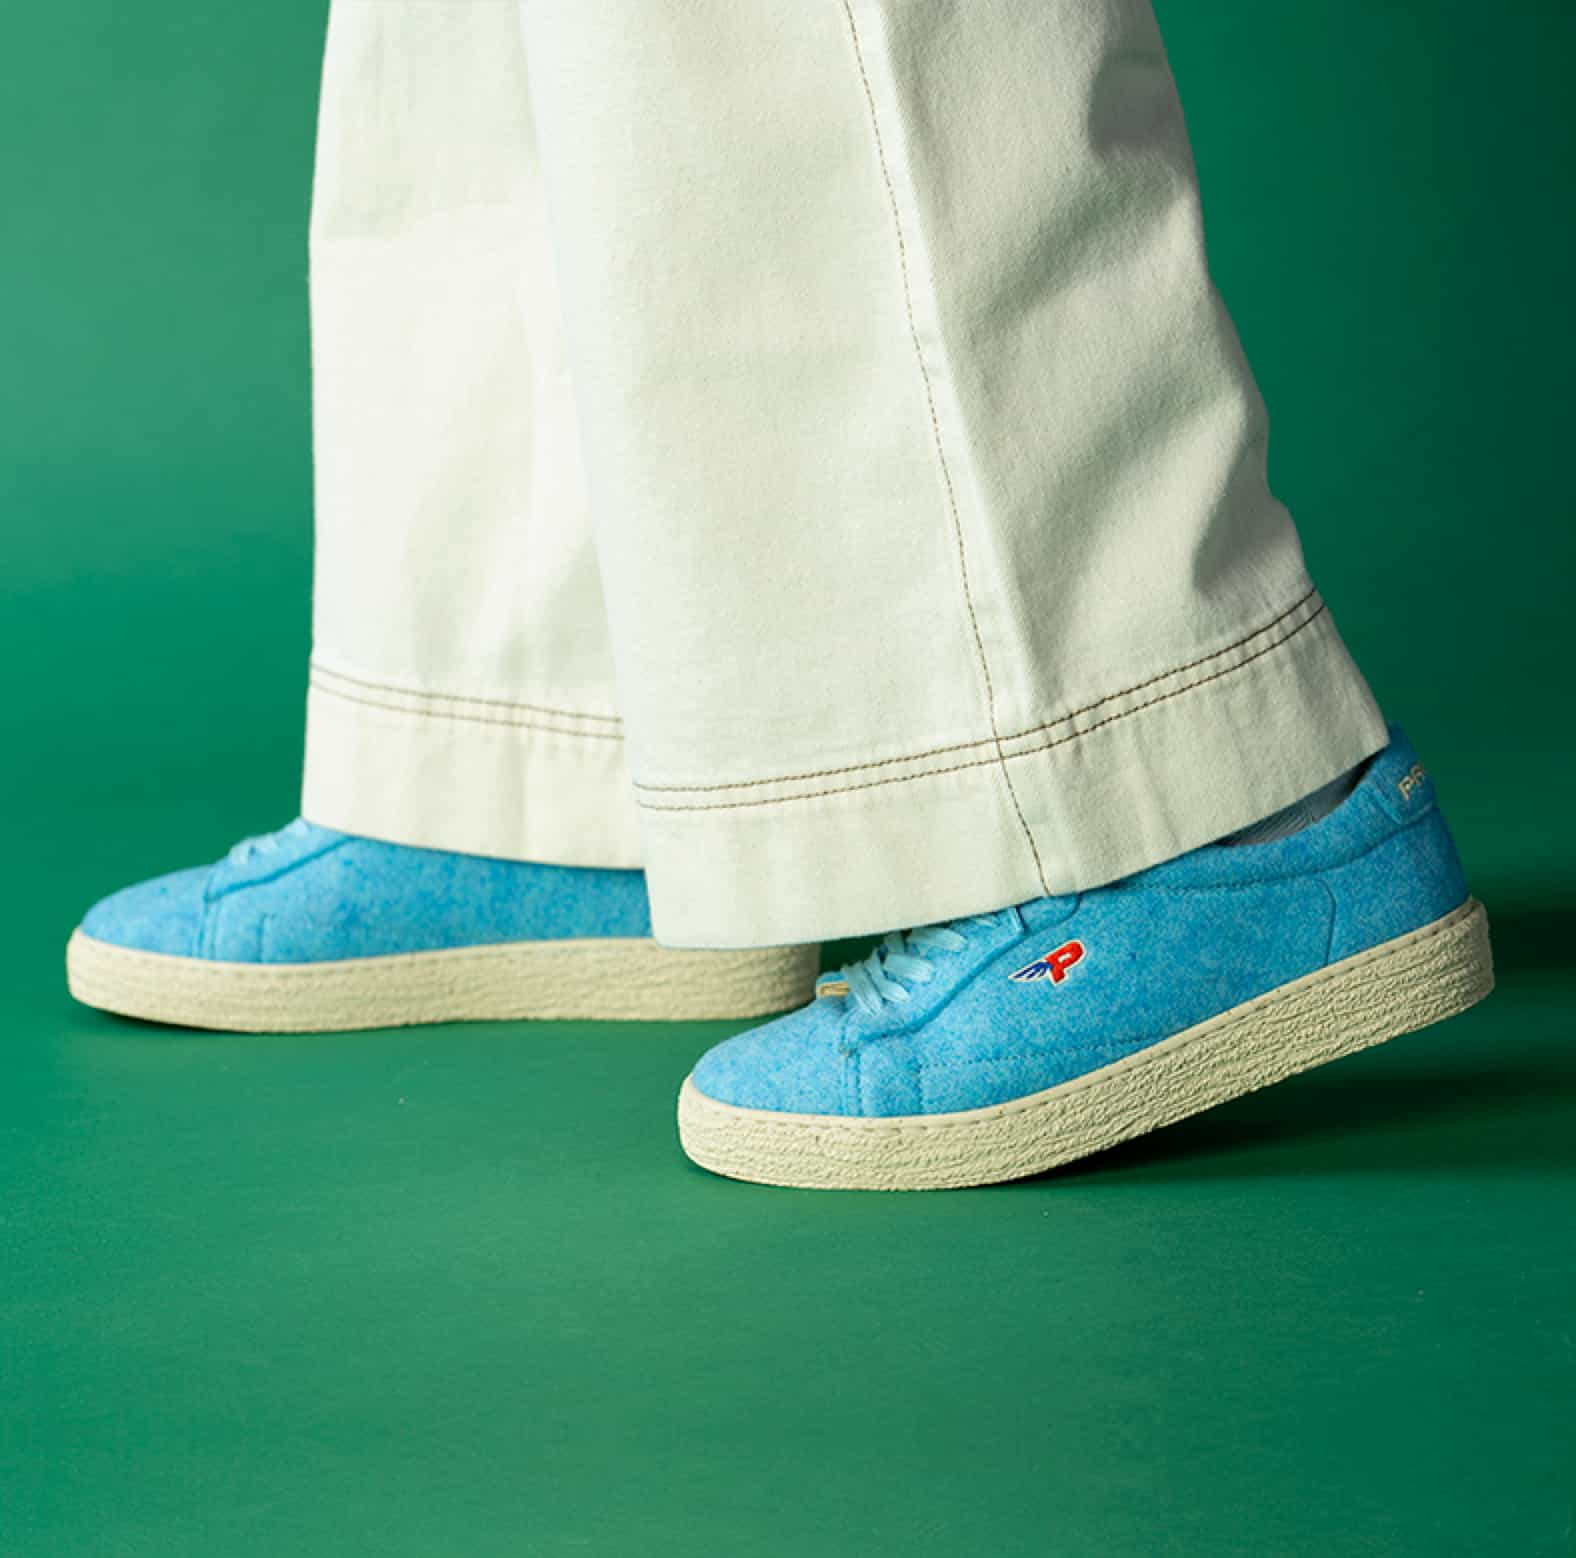 Sneakers Match Felt Baby Blue